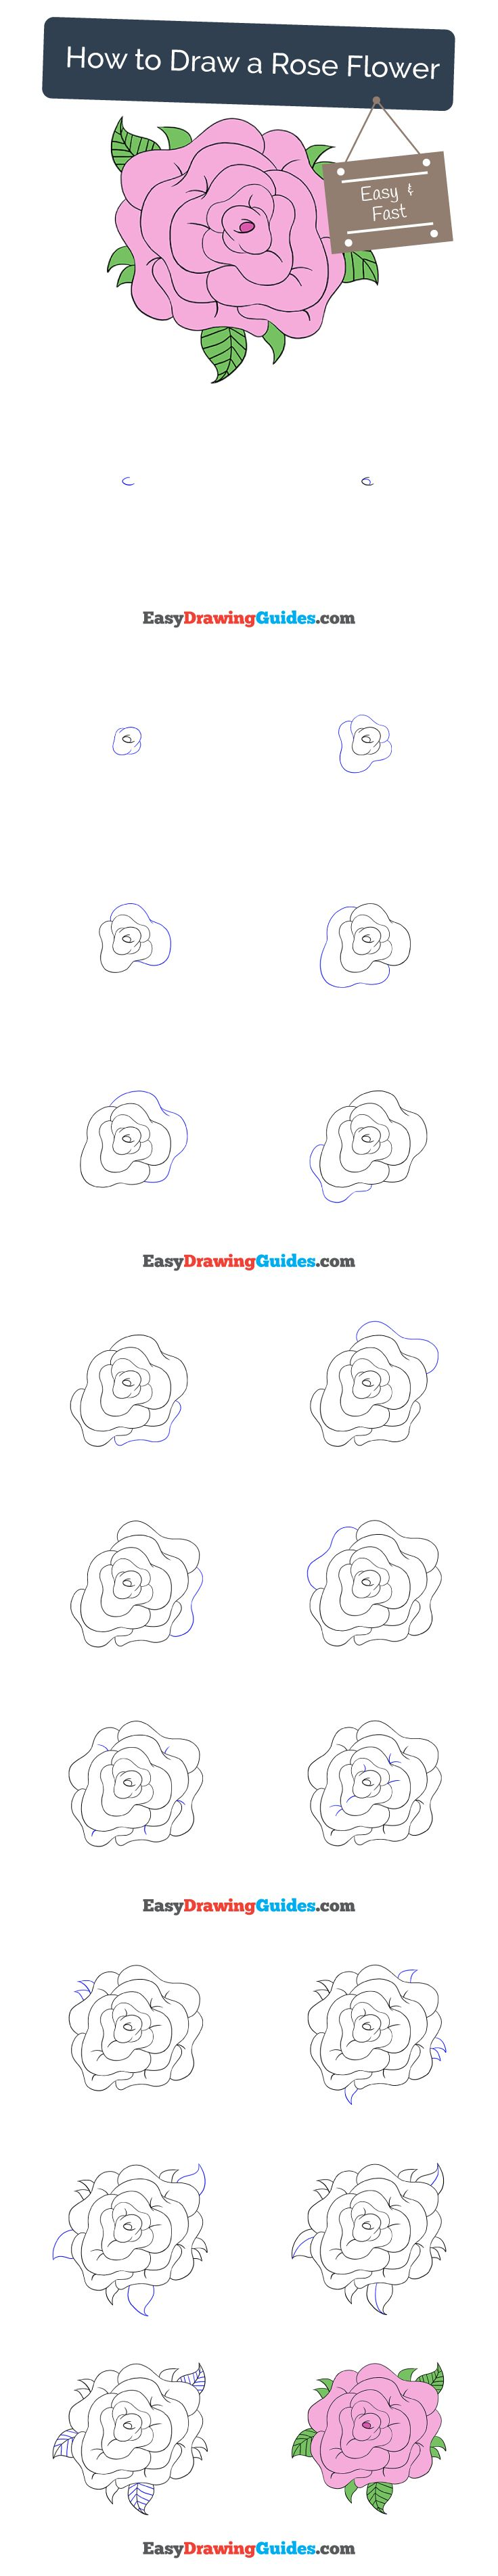 Learn How To Draw A Rose Flower: Easy Stepbystep Drawing Tutorial